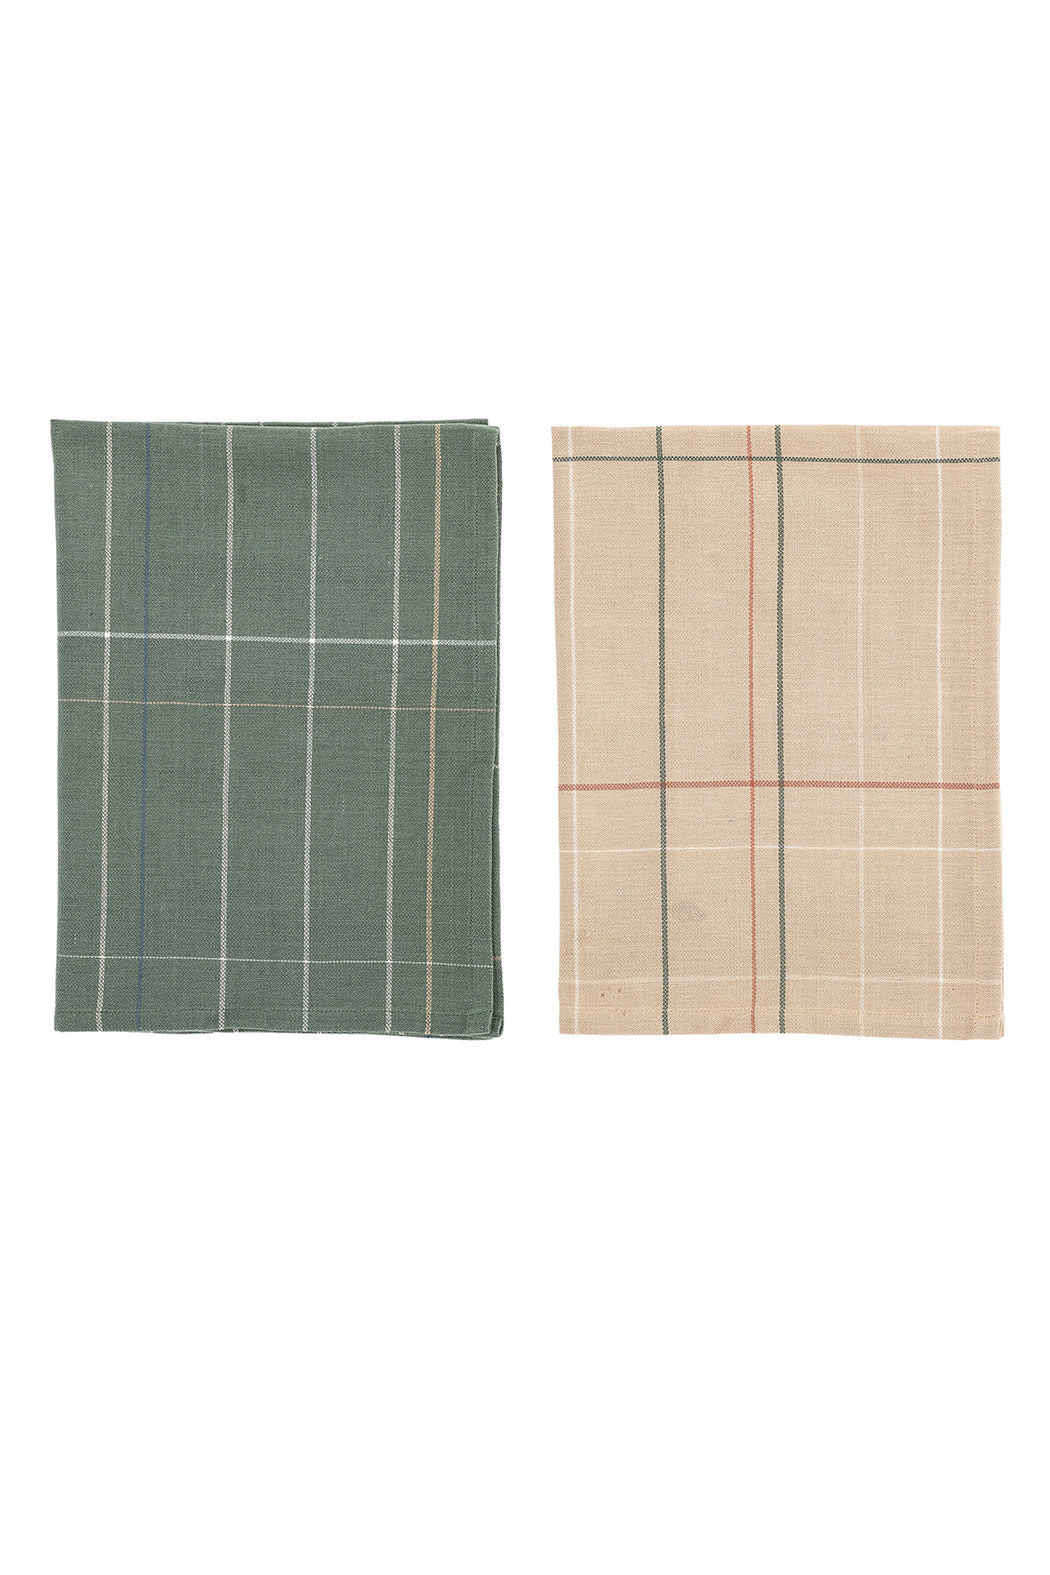 Checkered Green and Apricote Kitchen Towel, Textile, Bloomingville - 3LittlePicks